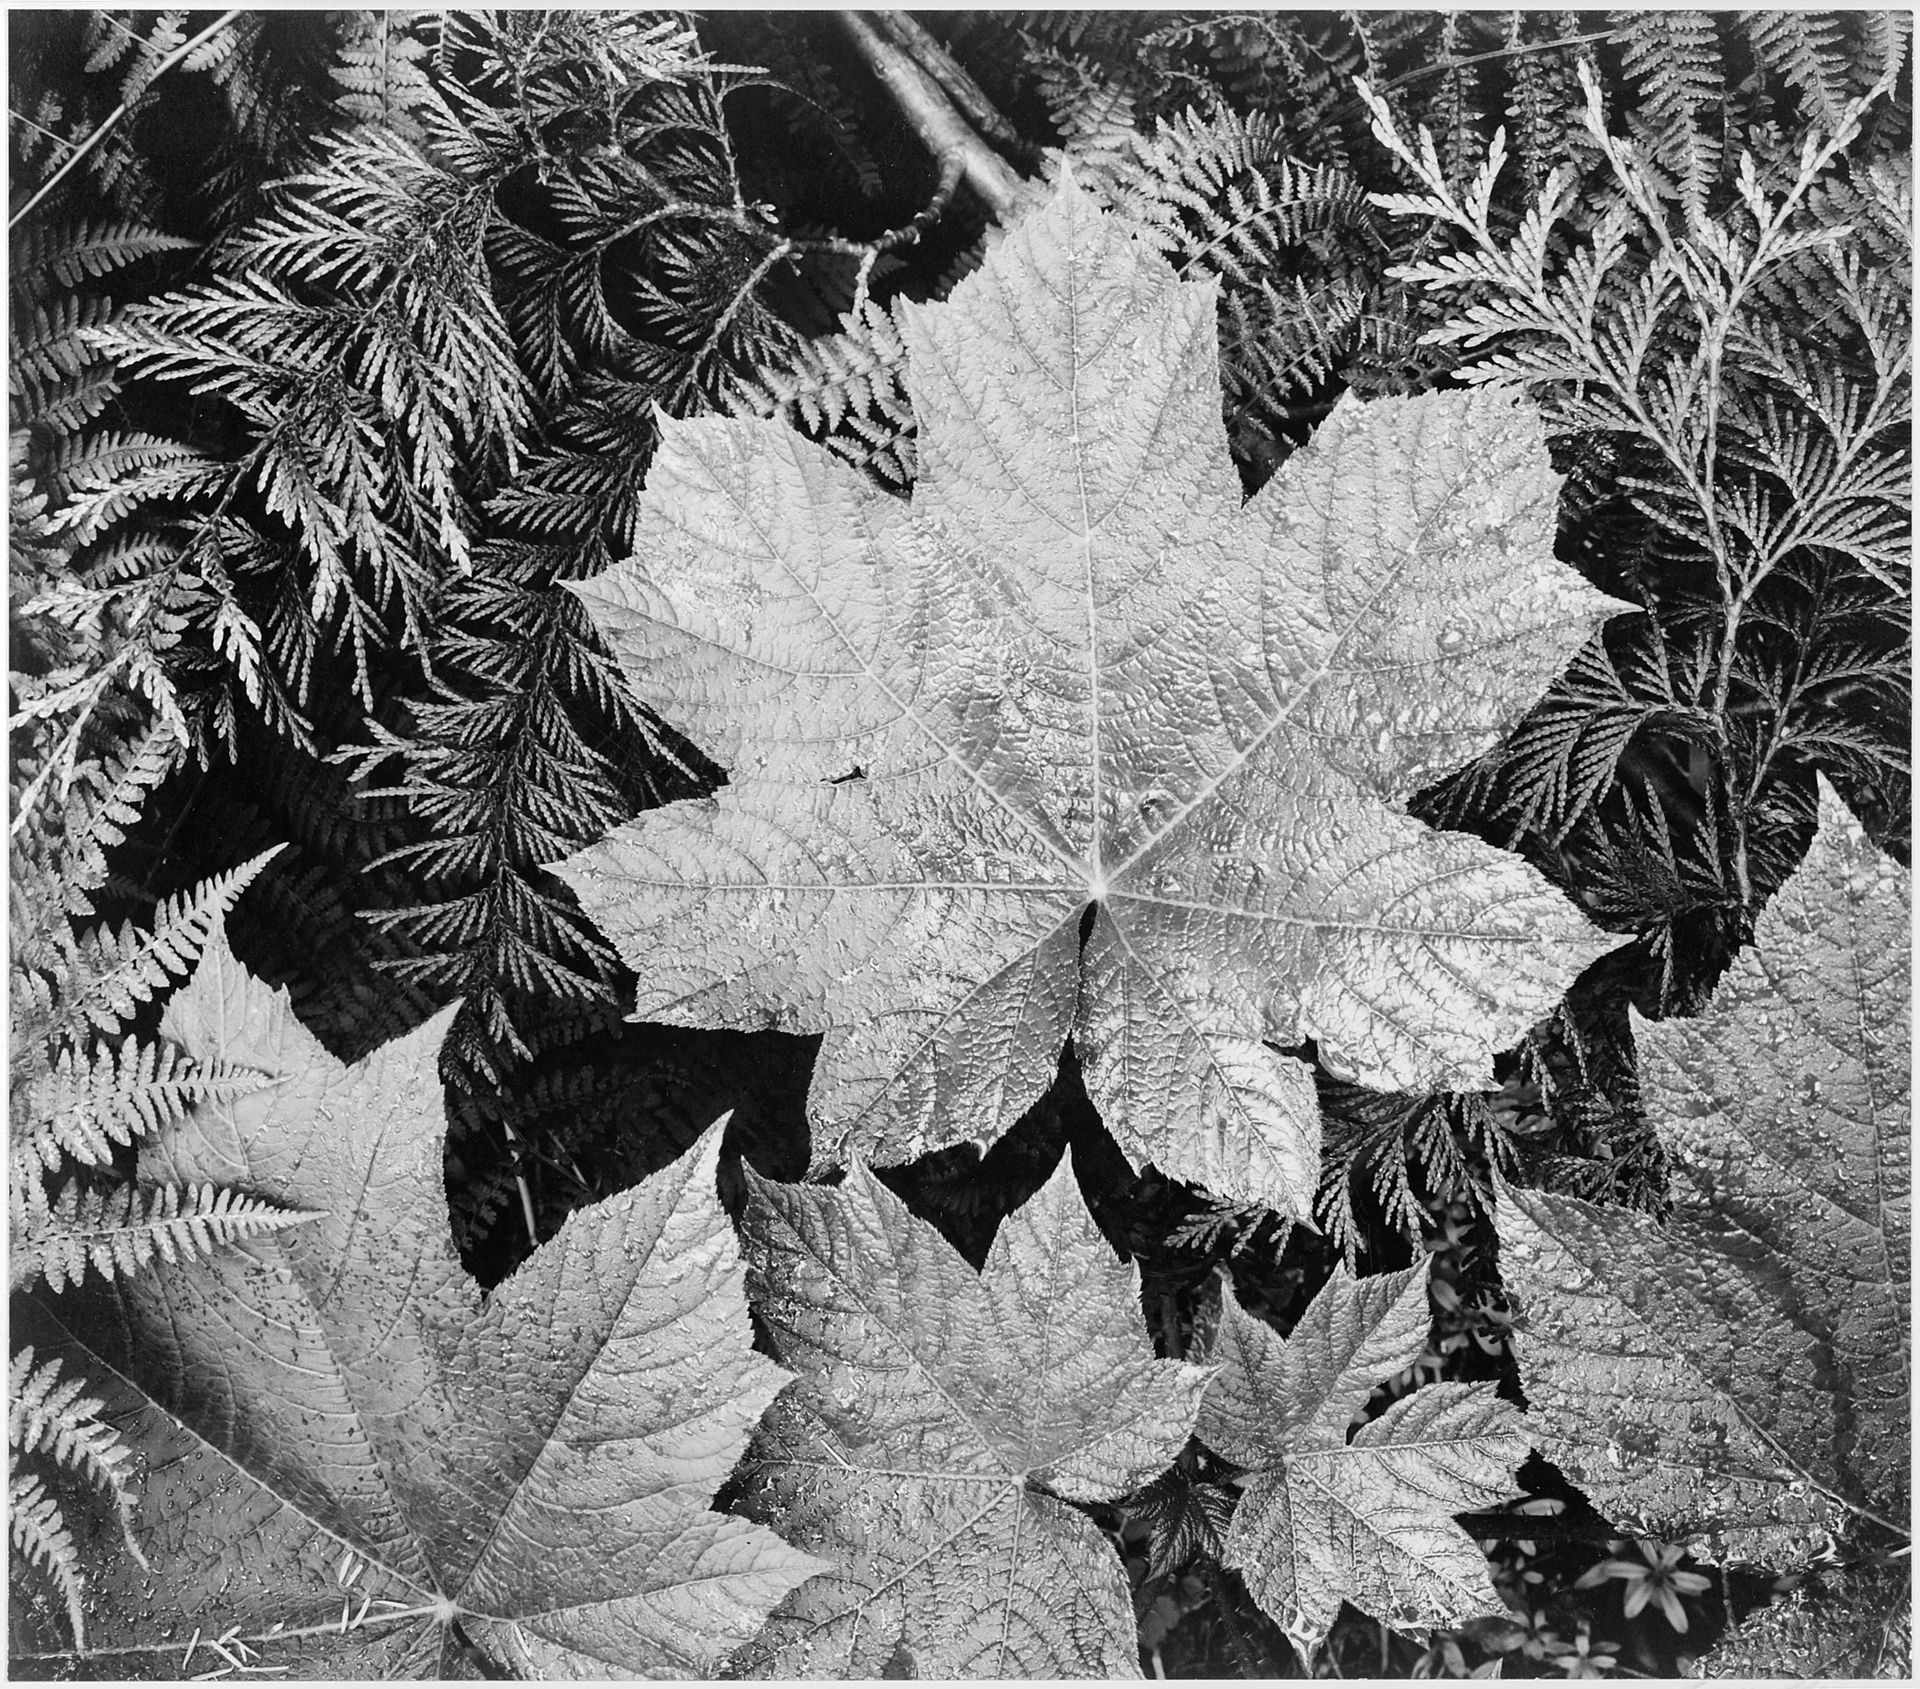 Ansel Adams - A black-and-white close-up photograph of palmate ...